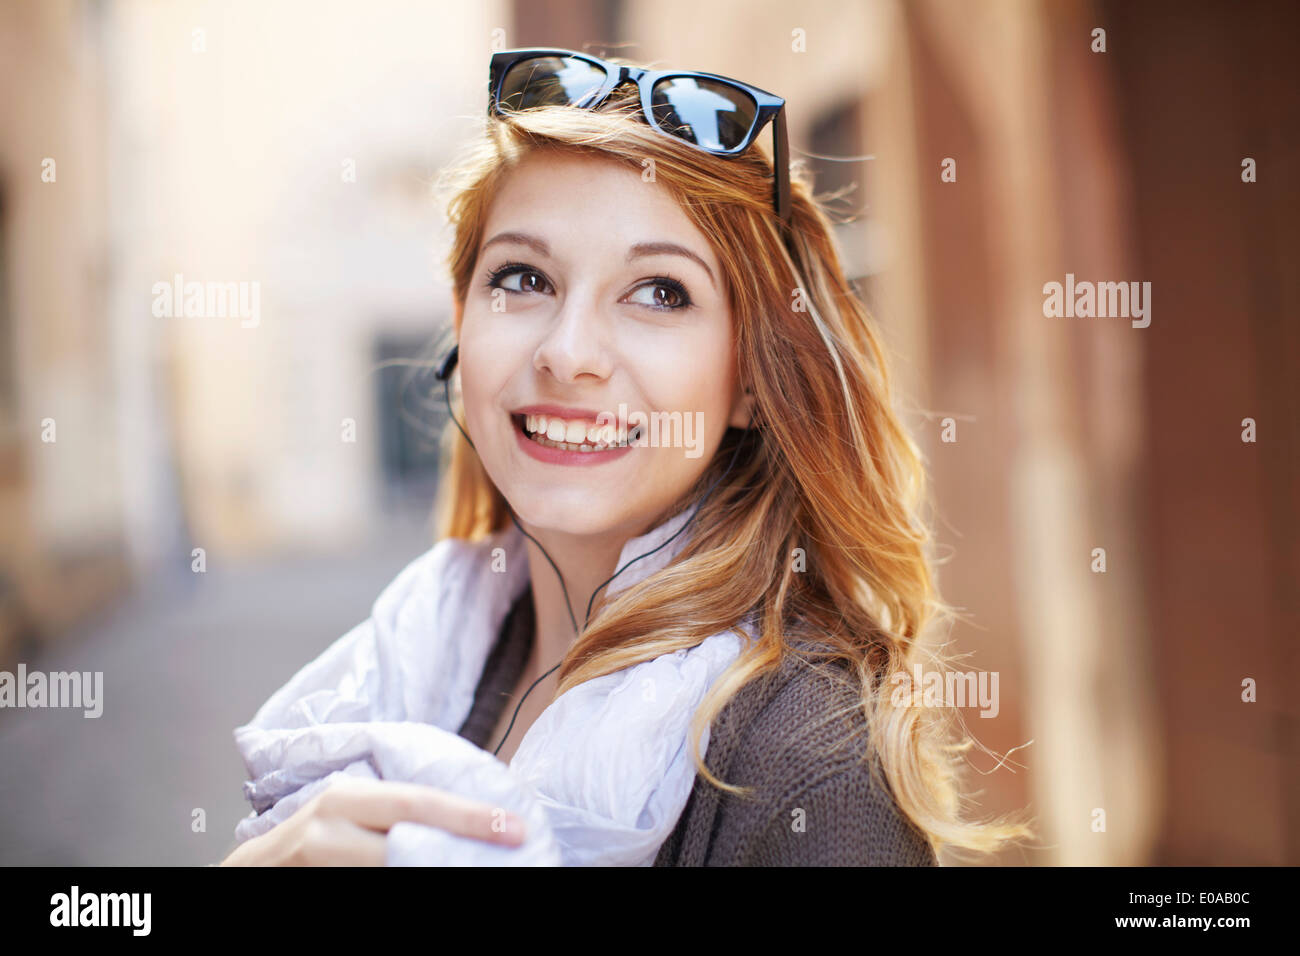 Sophisticated young woman looking back on street - Stock Image